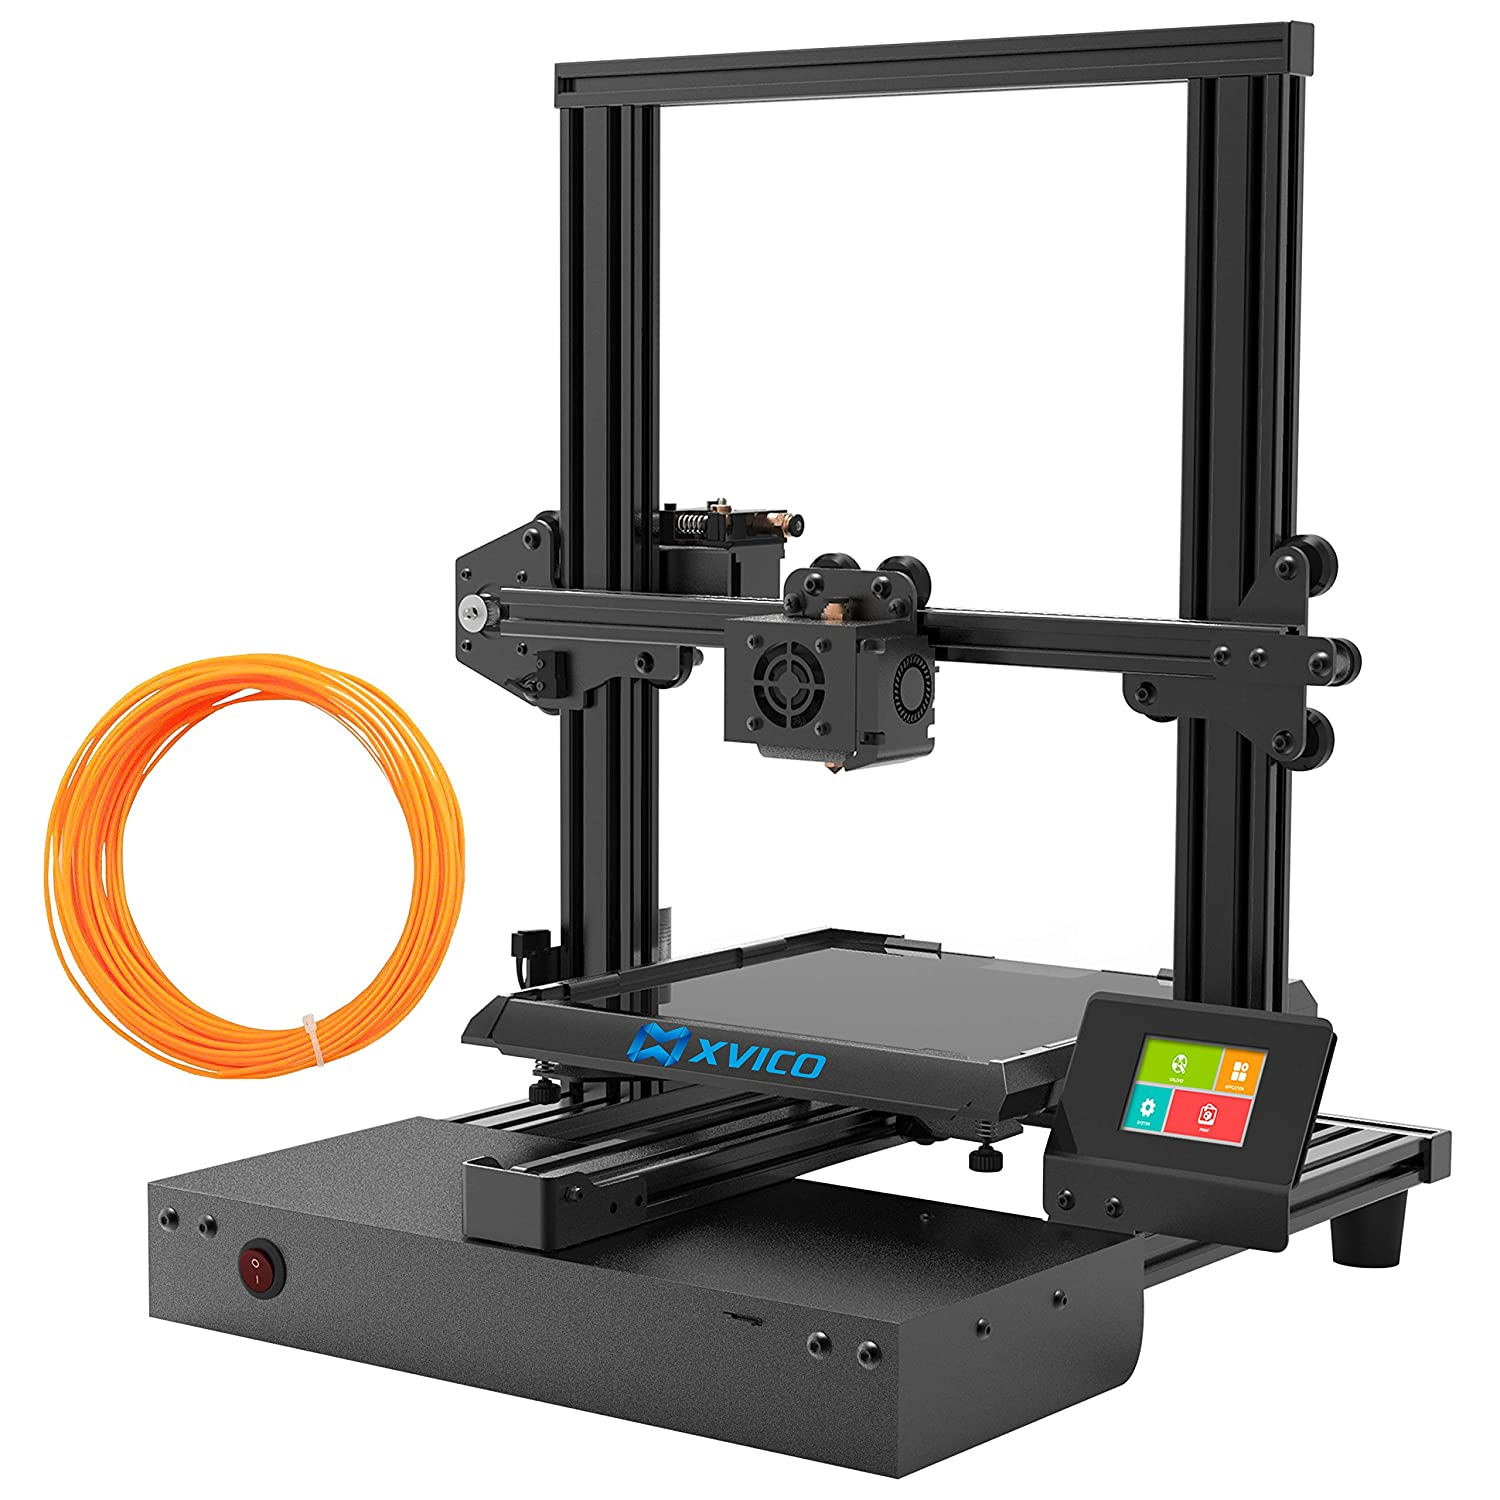 XVICO X3 Pro 3D Printers DIY Kit Aluminum Printing Machine with Filament Run Out Detection Sensor and Resume Print Metal Base Desktop 3D Printer UL Power for Home and School 200x200x250mm, Black